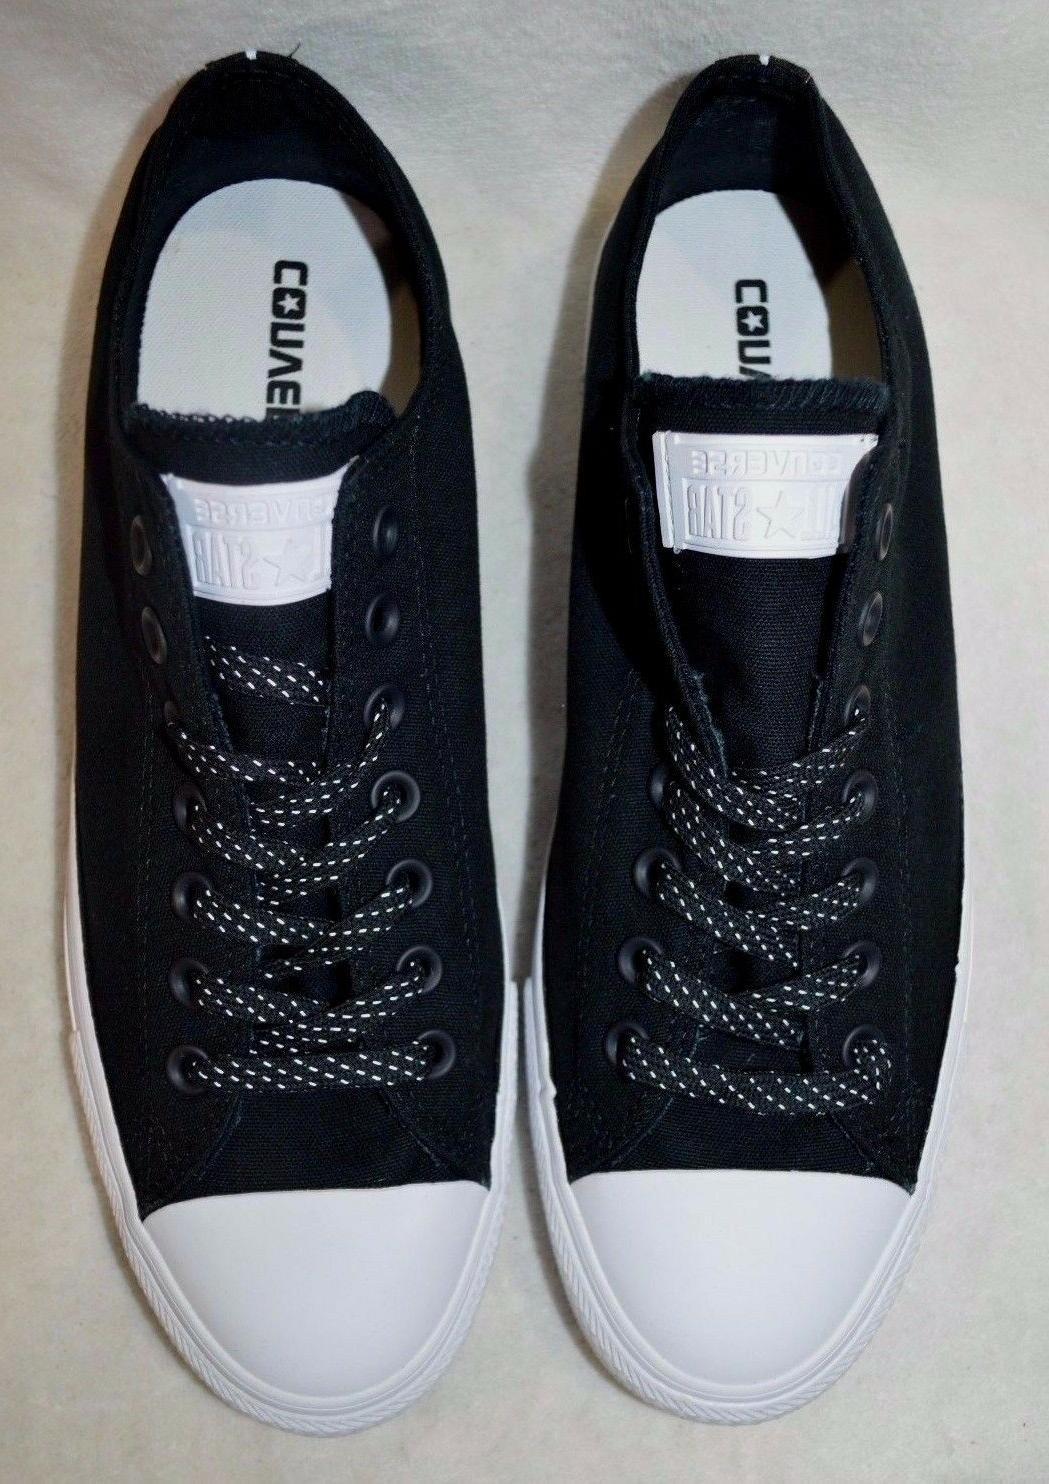 OX Black White Sneakers 9 /